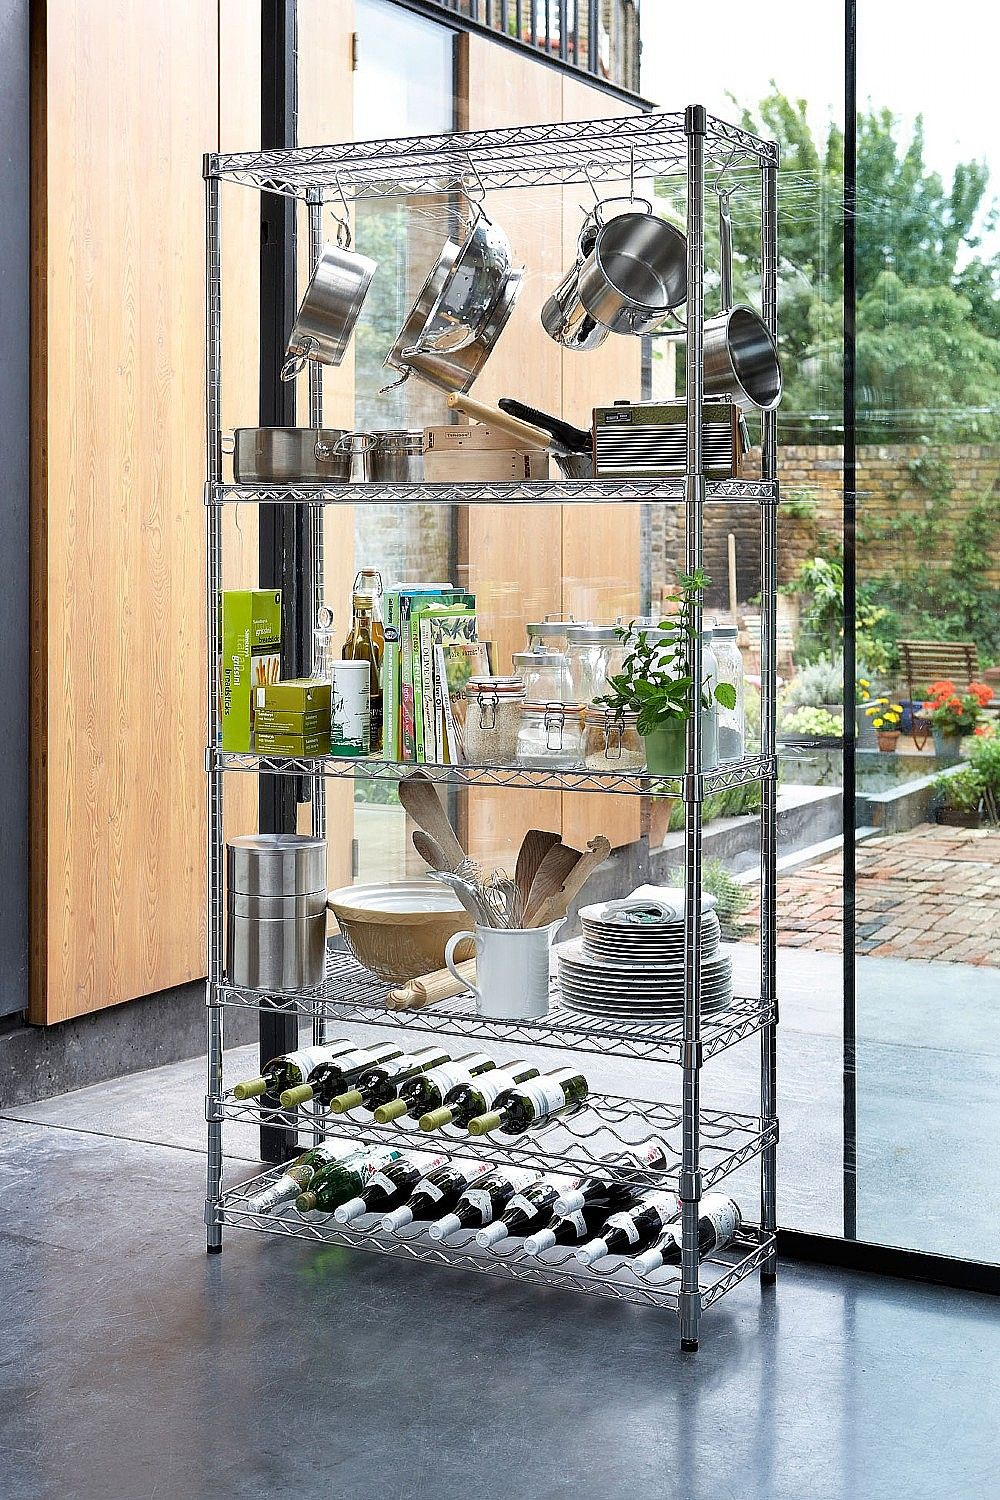 Merveilleux Chrome Kitchen Rack With Wine Shelves